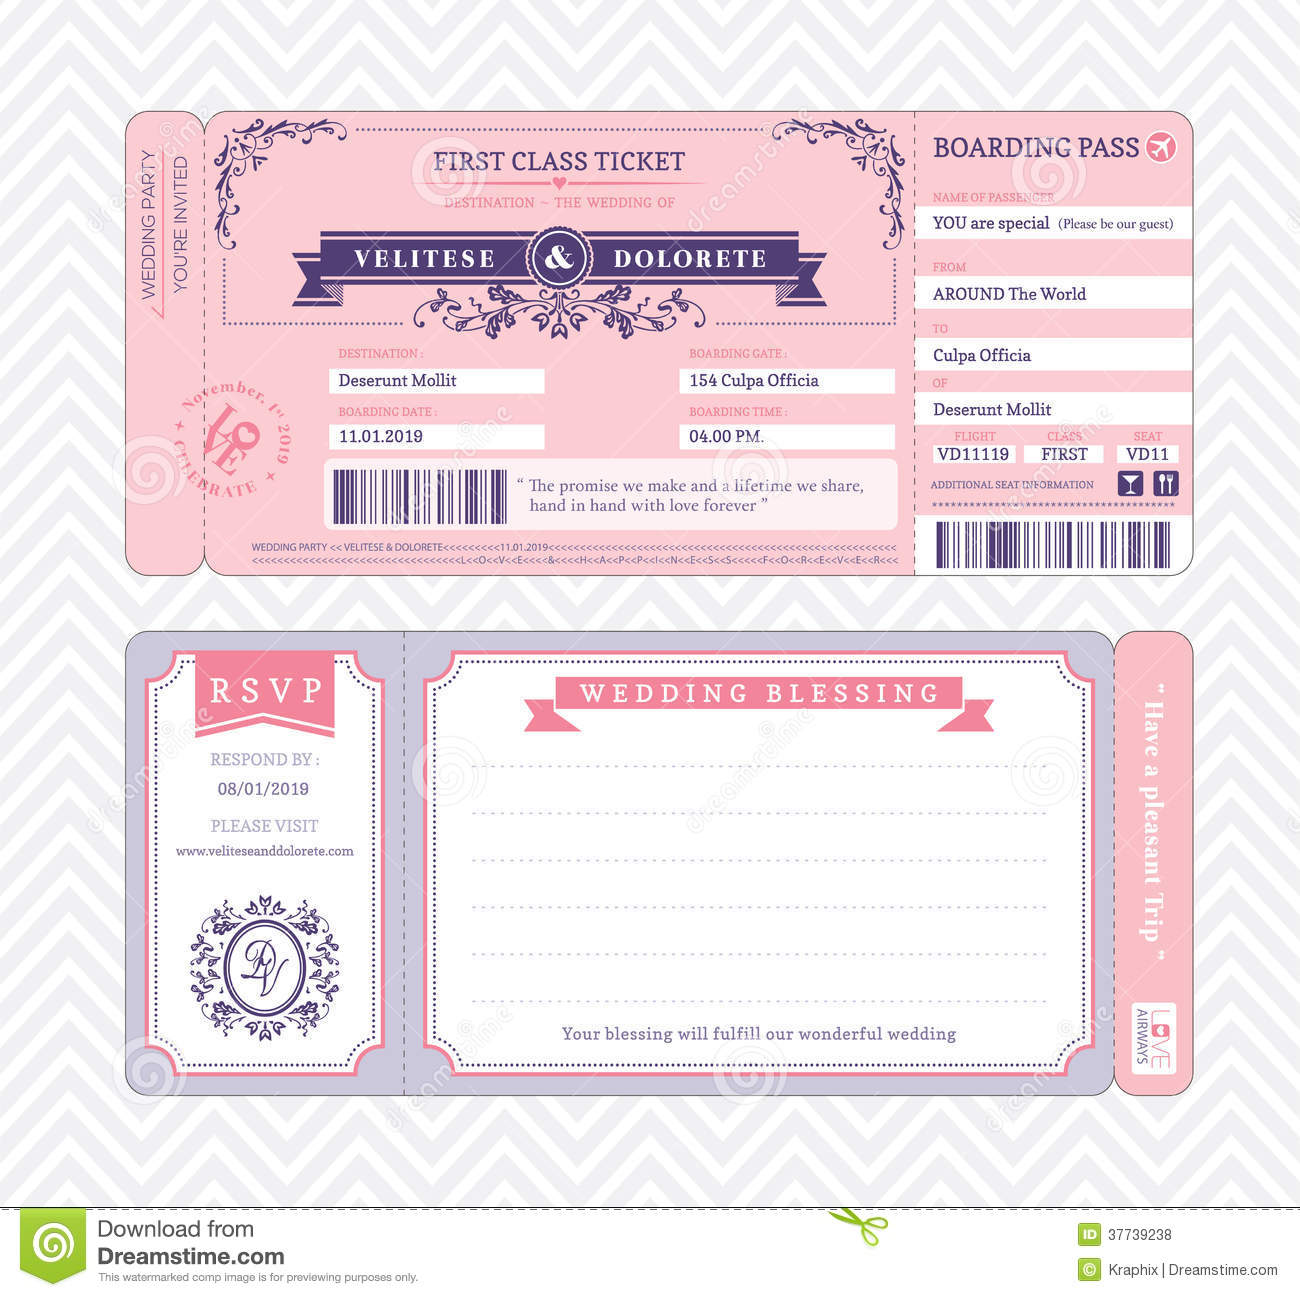 Boarding Pass Wedding Invitation Template Stock Vector - Wedding invitation templates: wedding invitation template download